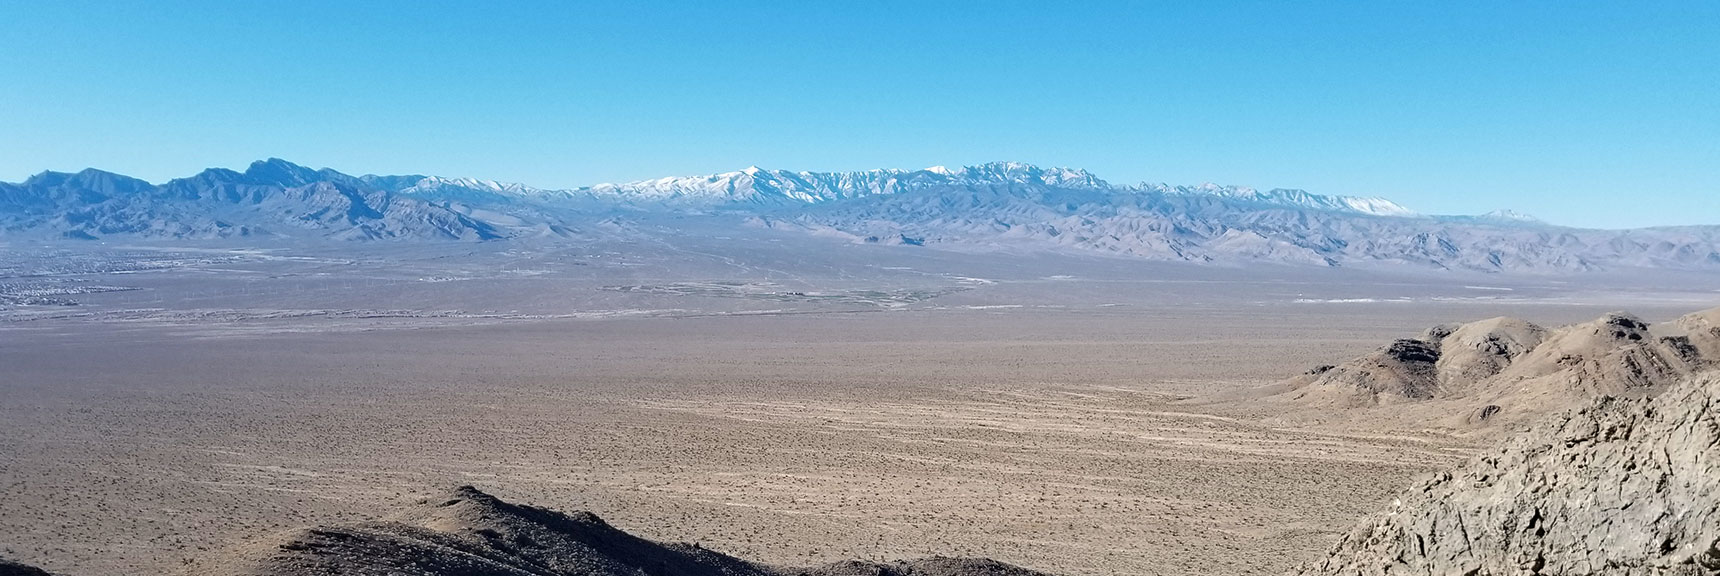 La Madre Mountain Wilderness and Mt Charleston as Seen from 3000ft on Gass Peak SW Approach